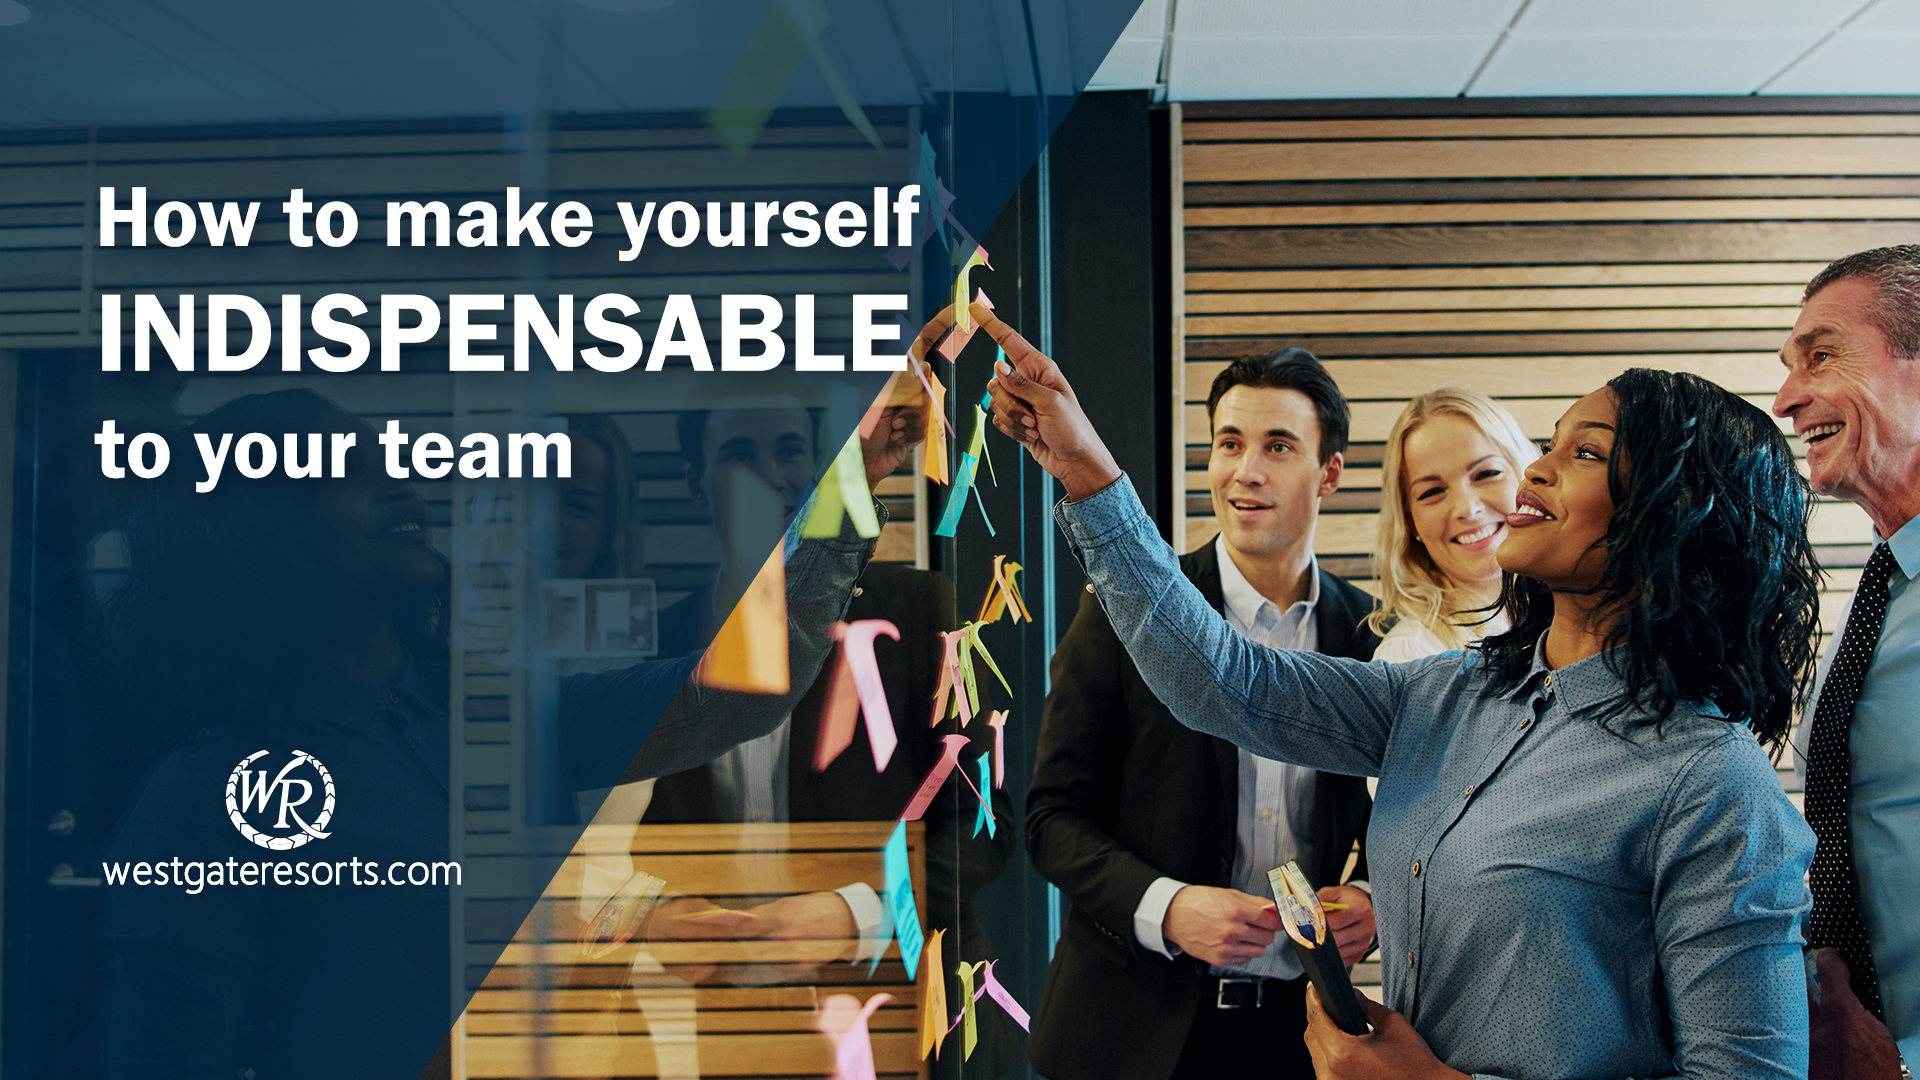 How to Make Yourself Indispensable to Your Team  | Job Security at Work | Resort Careers